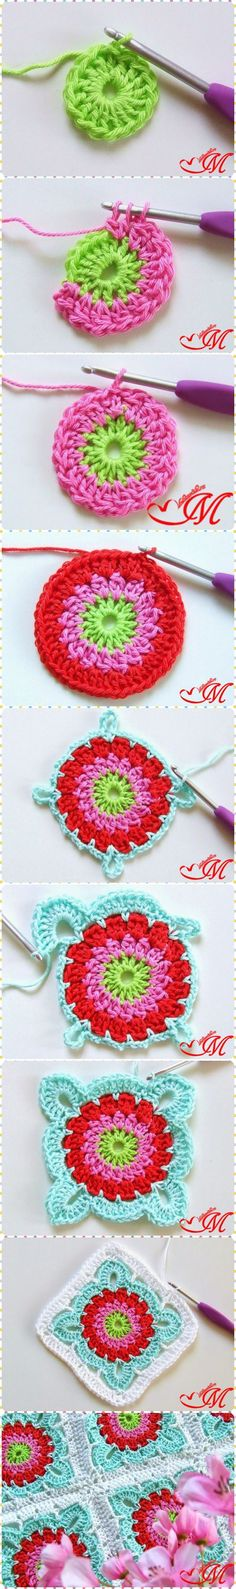 African Flower Crochet Is Perfect For Your Projects | The WHOot